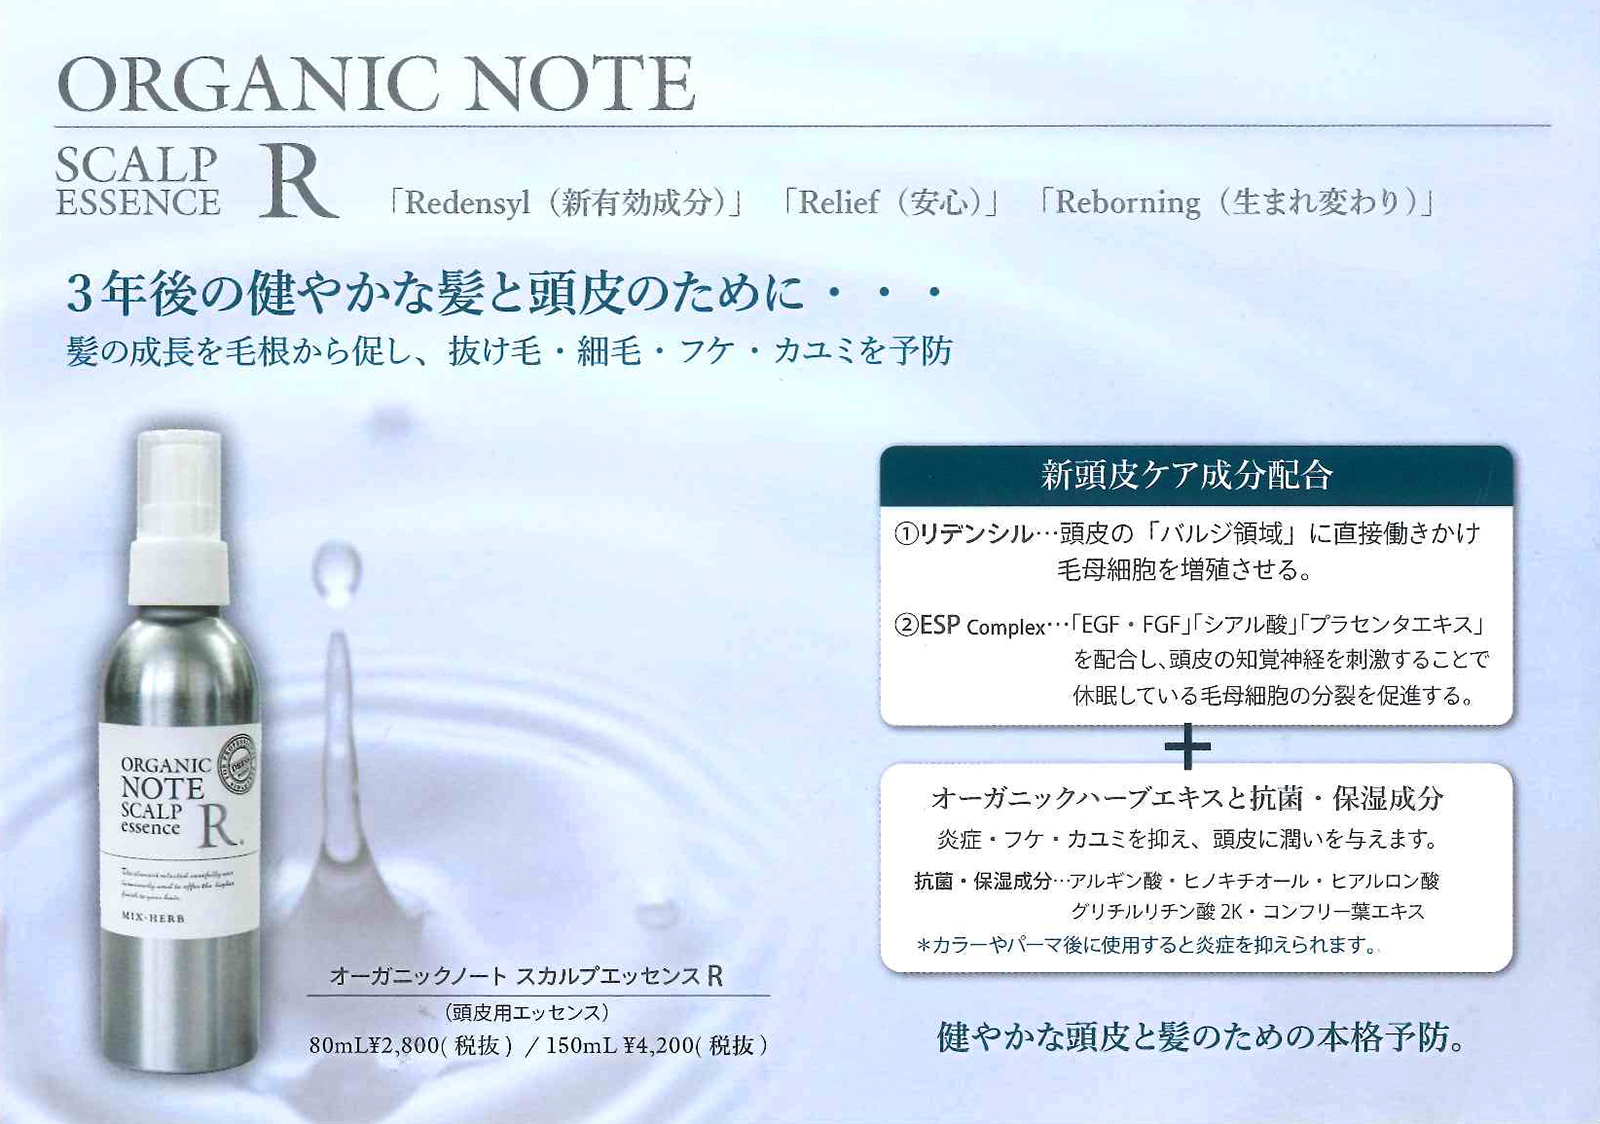 ORGANIC NOTE SCALP ESSENCE R